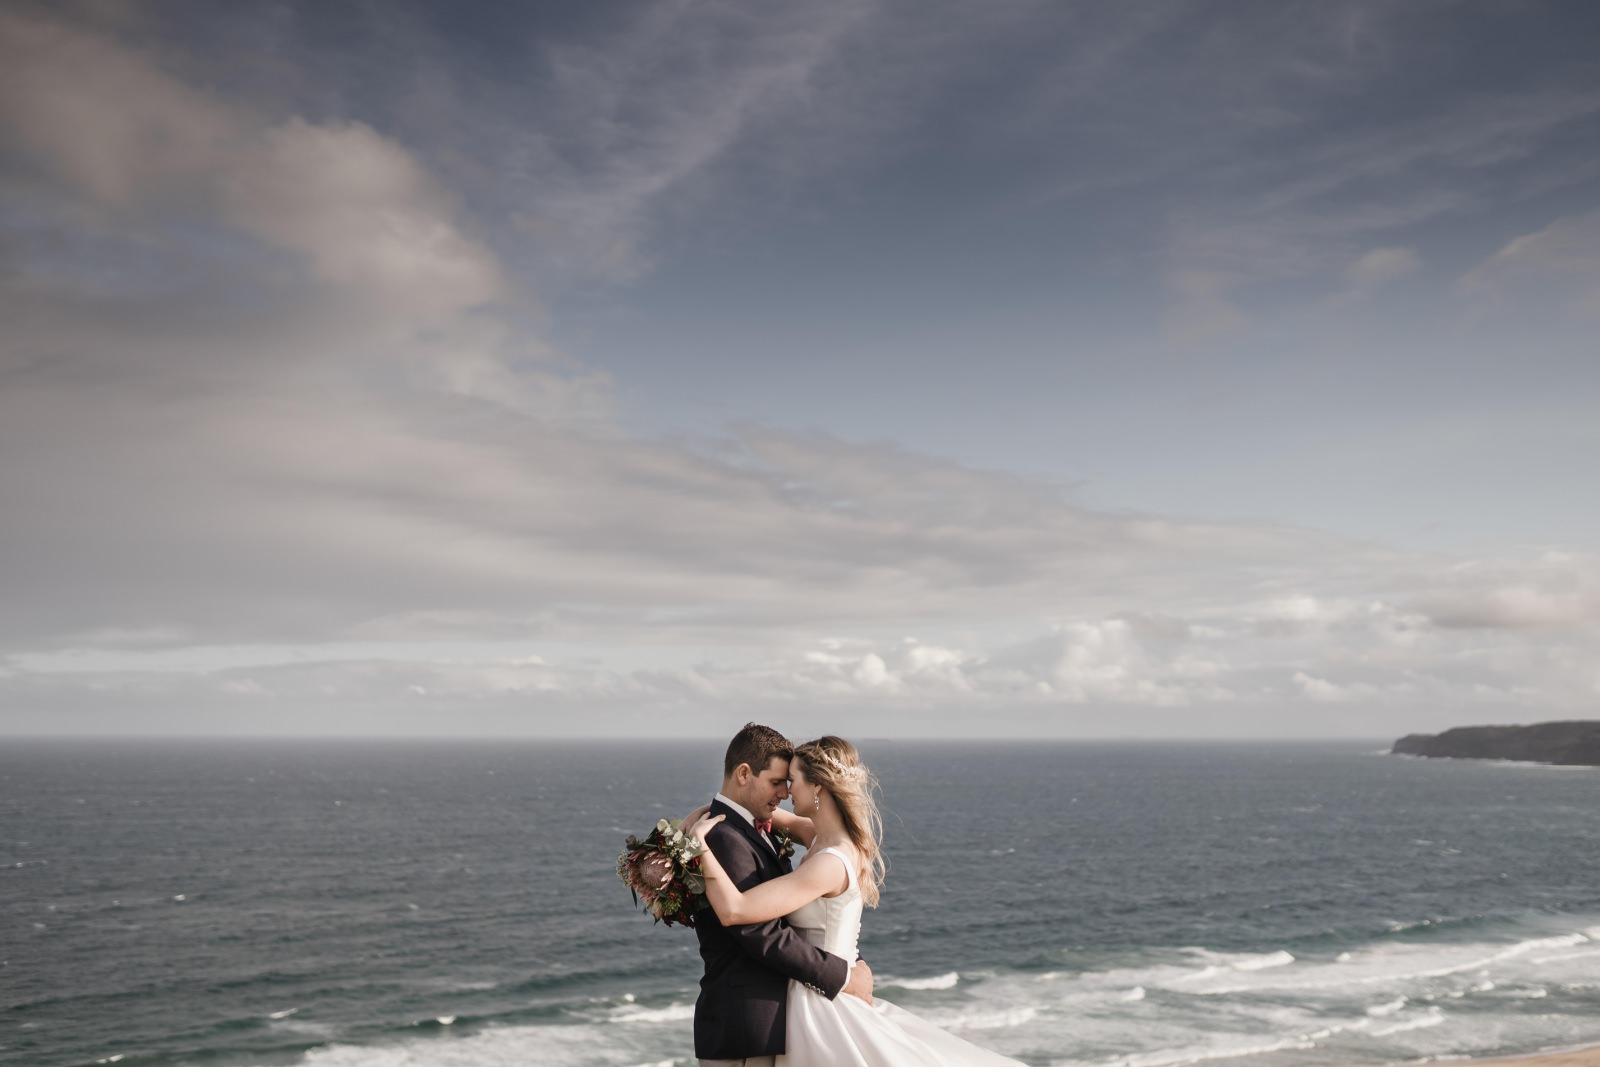 newcastle-wedding-photographer-merewether-surfhouse-kandis-samuel-96.jpg